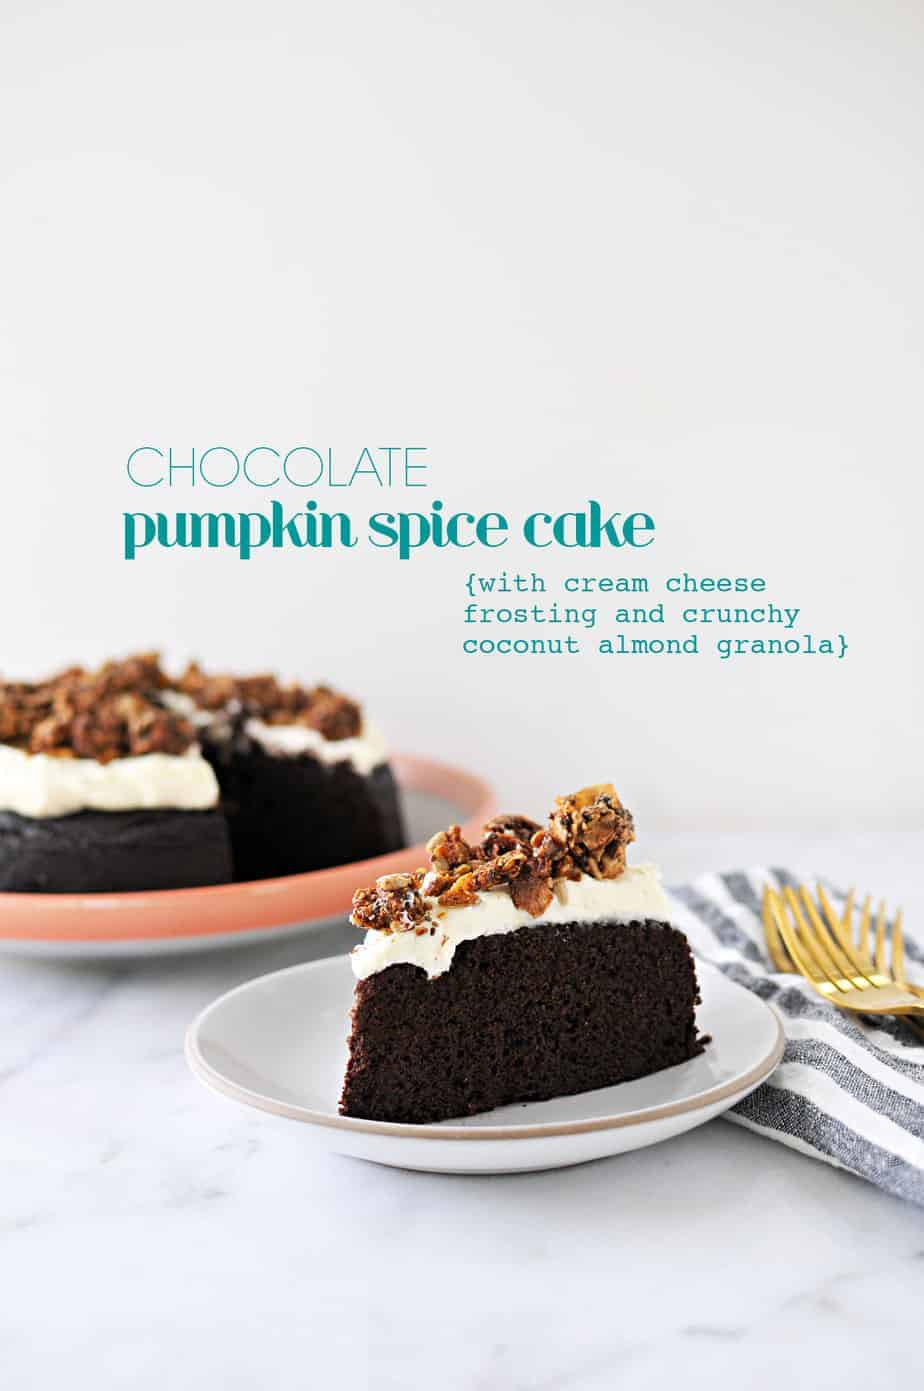 Chocolate Pumpkin Spice Cake with Cream Cheese Frosting recipe (via thepigandquill.com) #glutenfree #baking #fall